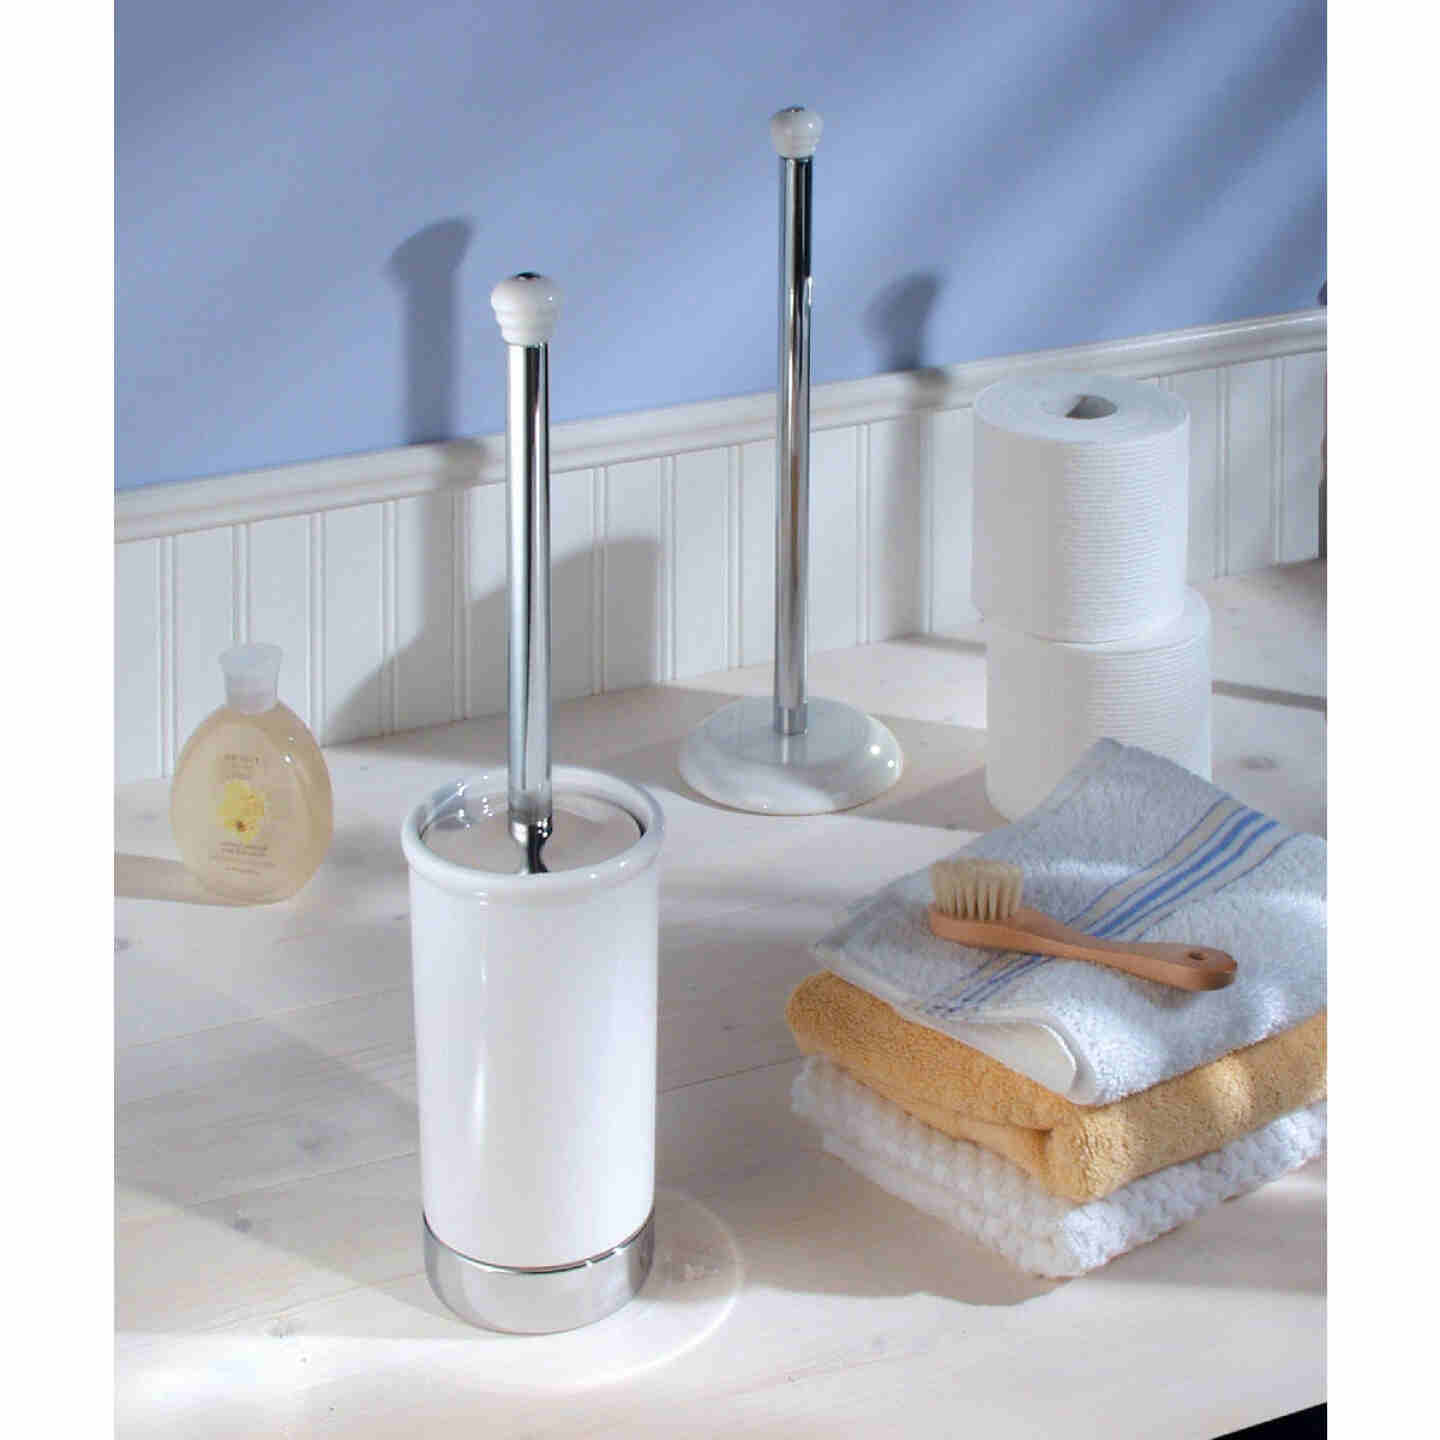 InterDesign York 17.5 In. Toilet Bowl Brush With Caddy Image 2